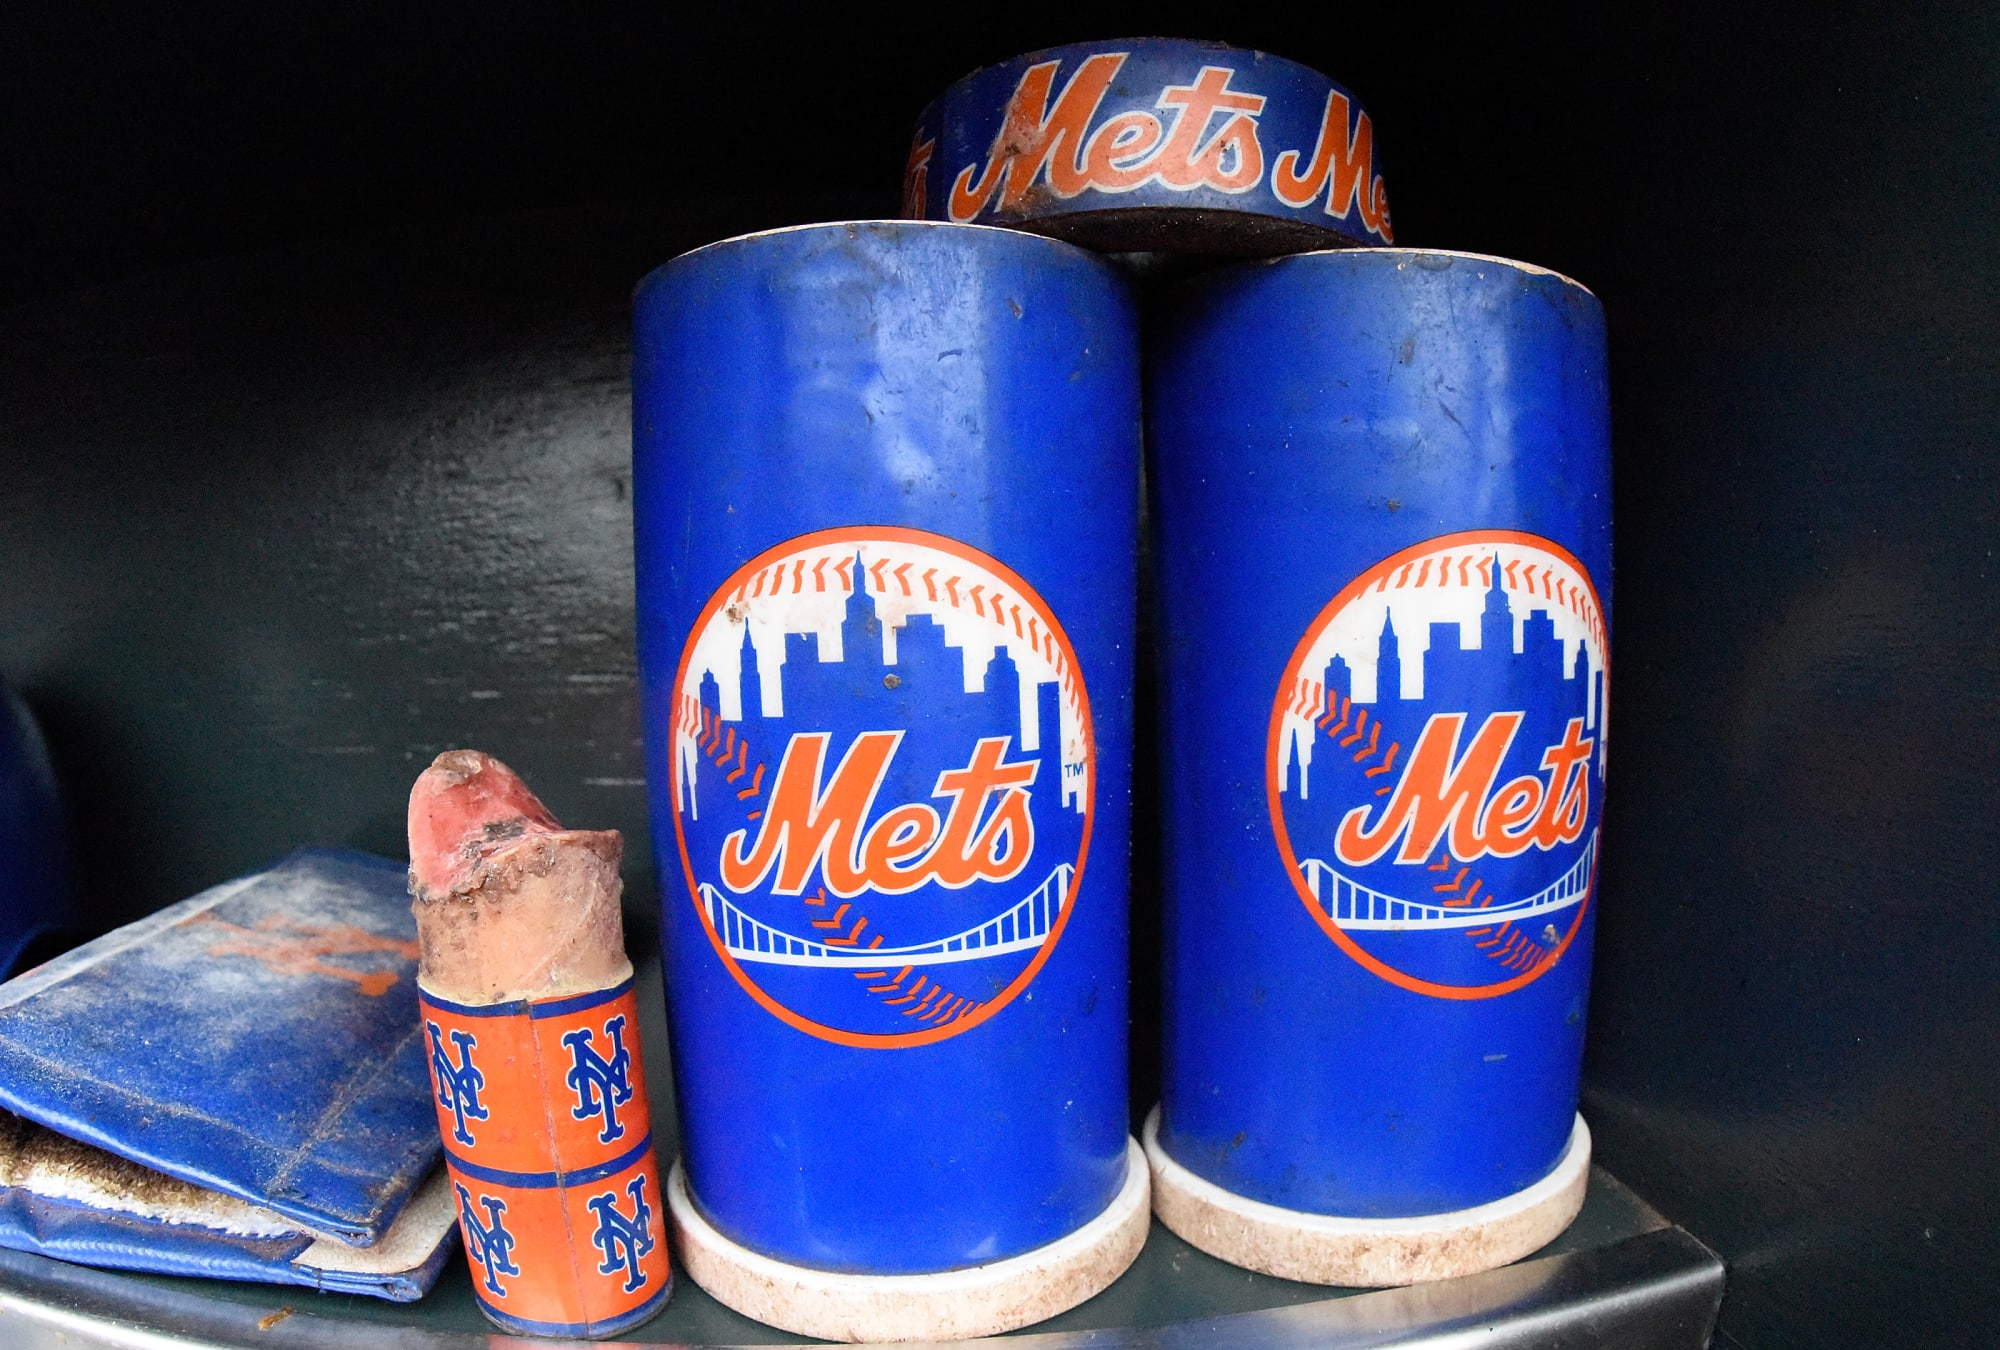 NY Mets: My all-time favorite Mets gift came unexpectedly